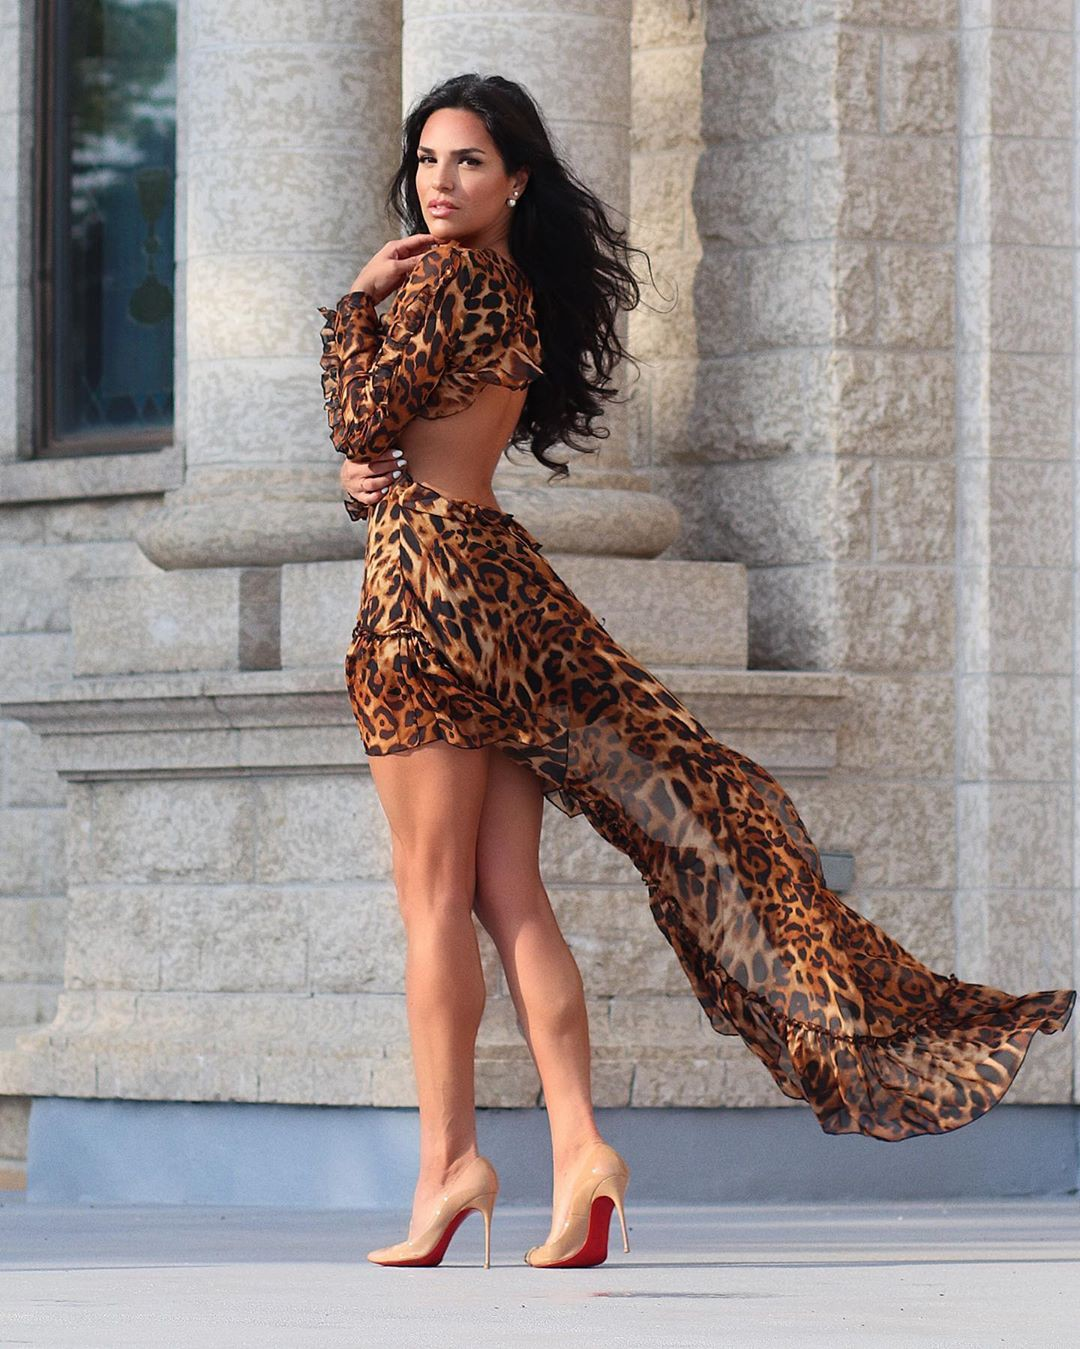 brown clothing ideas with dress, best photoshoot ideas, female thighs